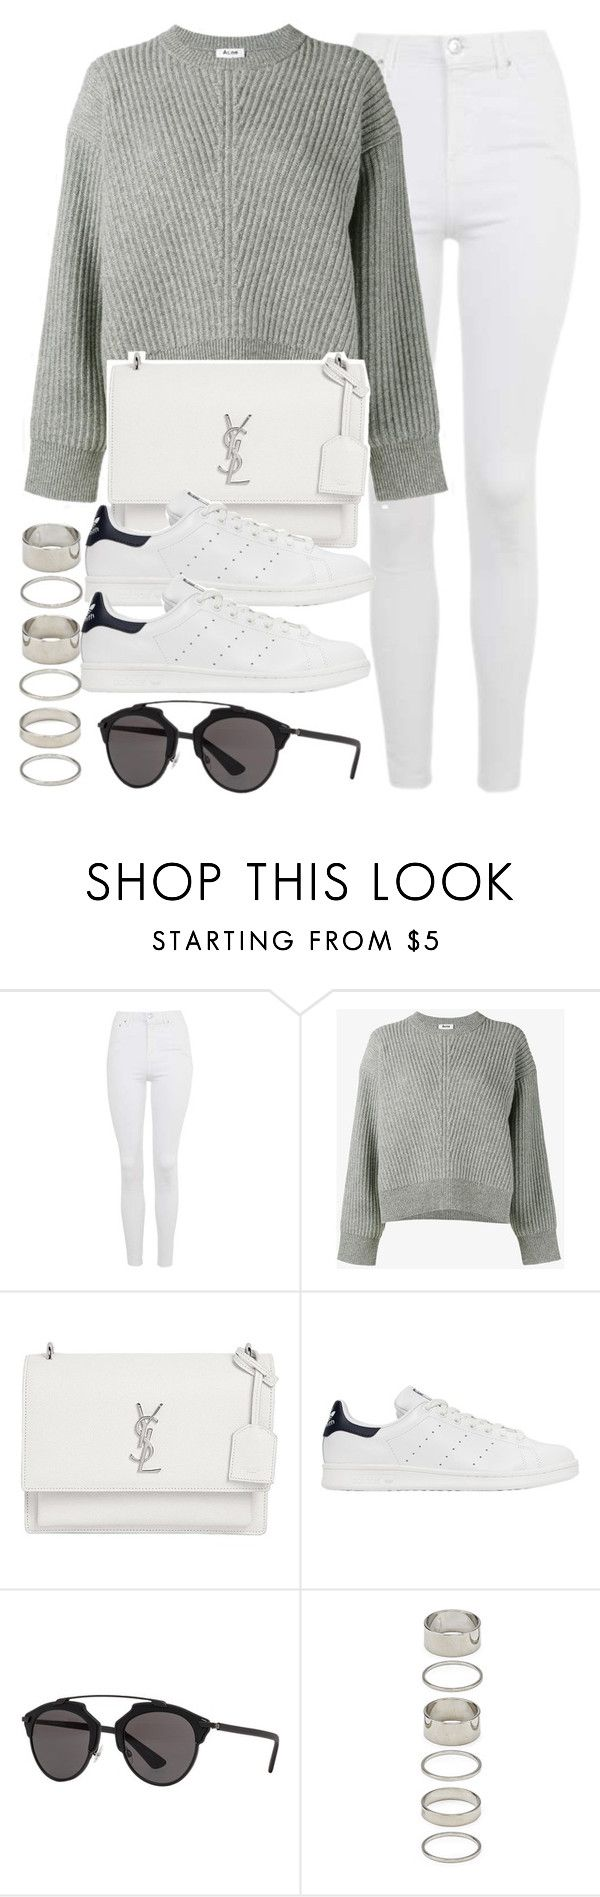 """""""Sin título #11973"""" by vany-alvarado ❤ liked on Polyvore featuring Topshop, Acne Studios, Yves Saint Laurent, adidas Originals, Christian Dior and Forever 21"""